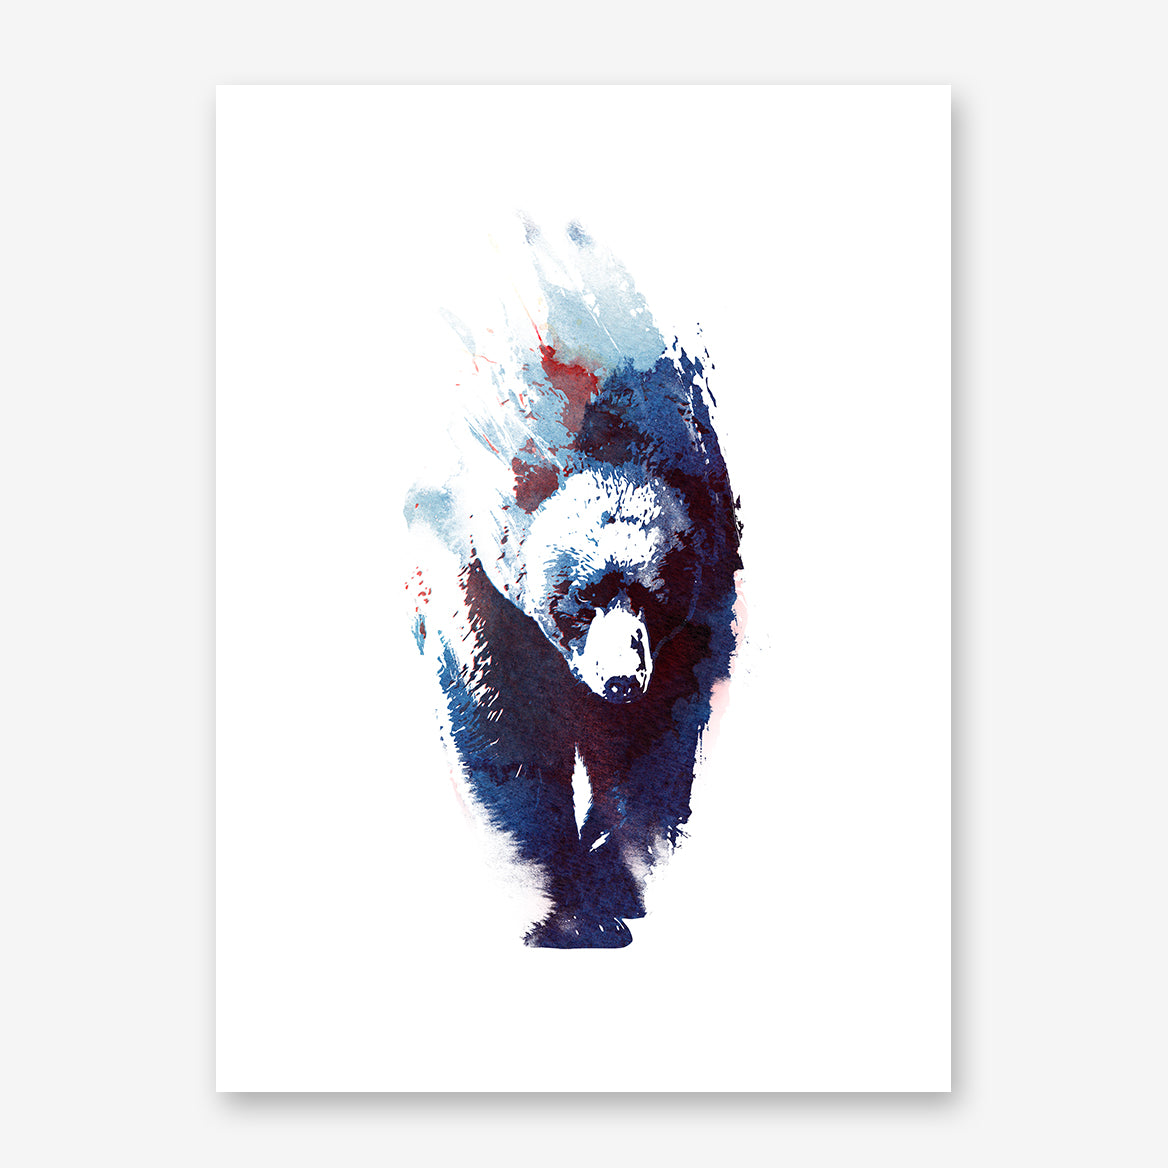 Watercolour poster print by Robert Farkas, with a blue bear, on a white background.